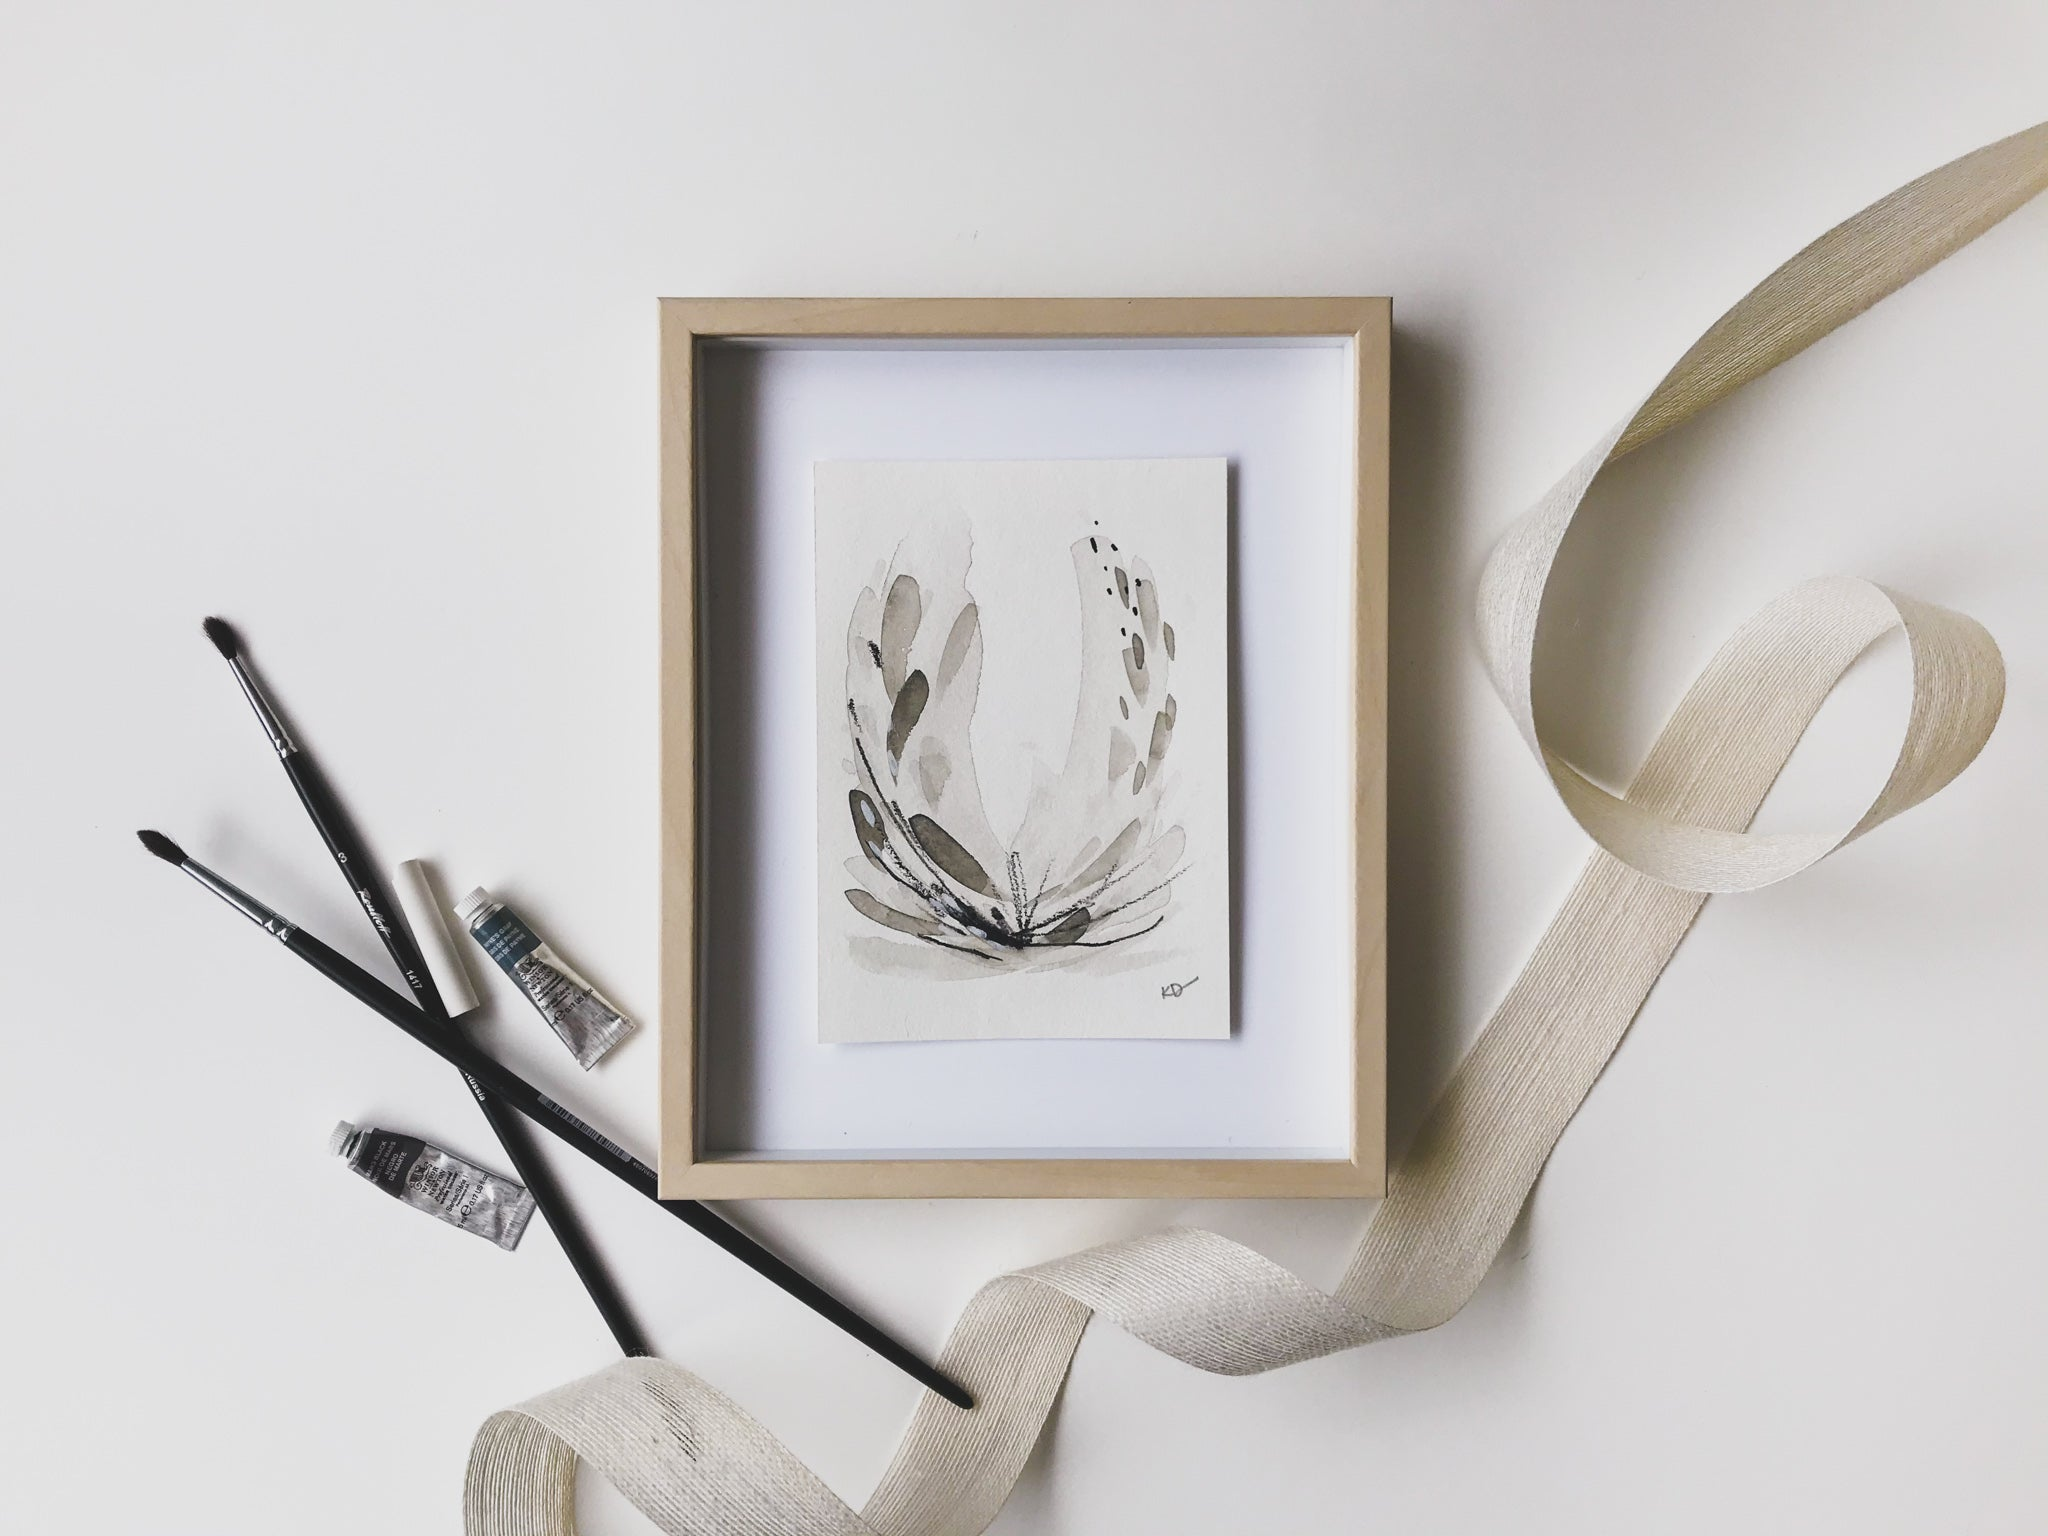 Neutral Series 31 - minimal abstract 5x7in watercolor on paper by artist Kait DeWolff of @kaitcreative. $42CAD